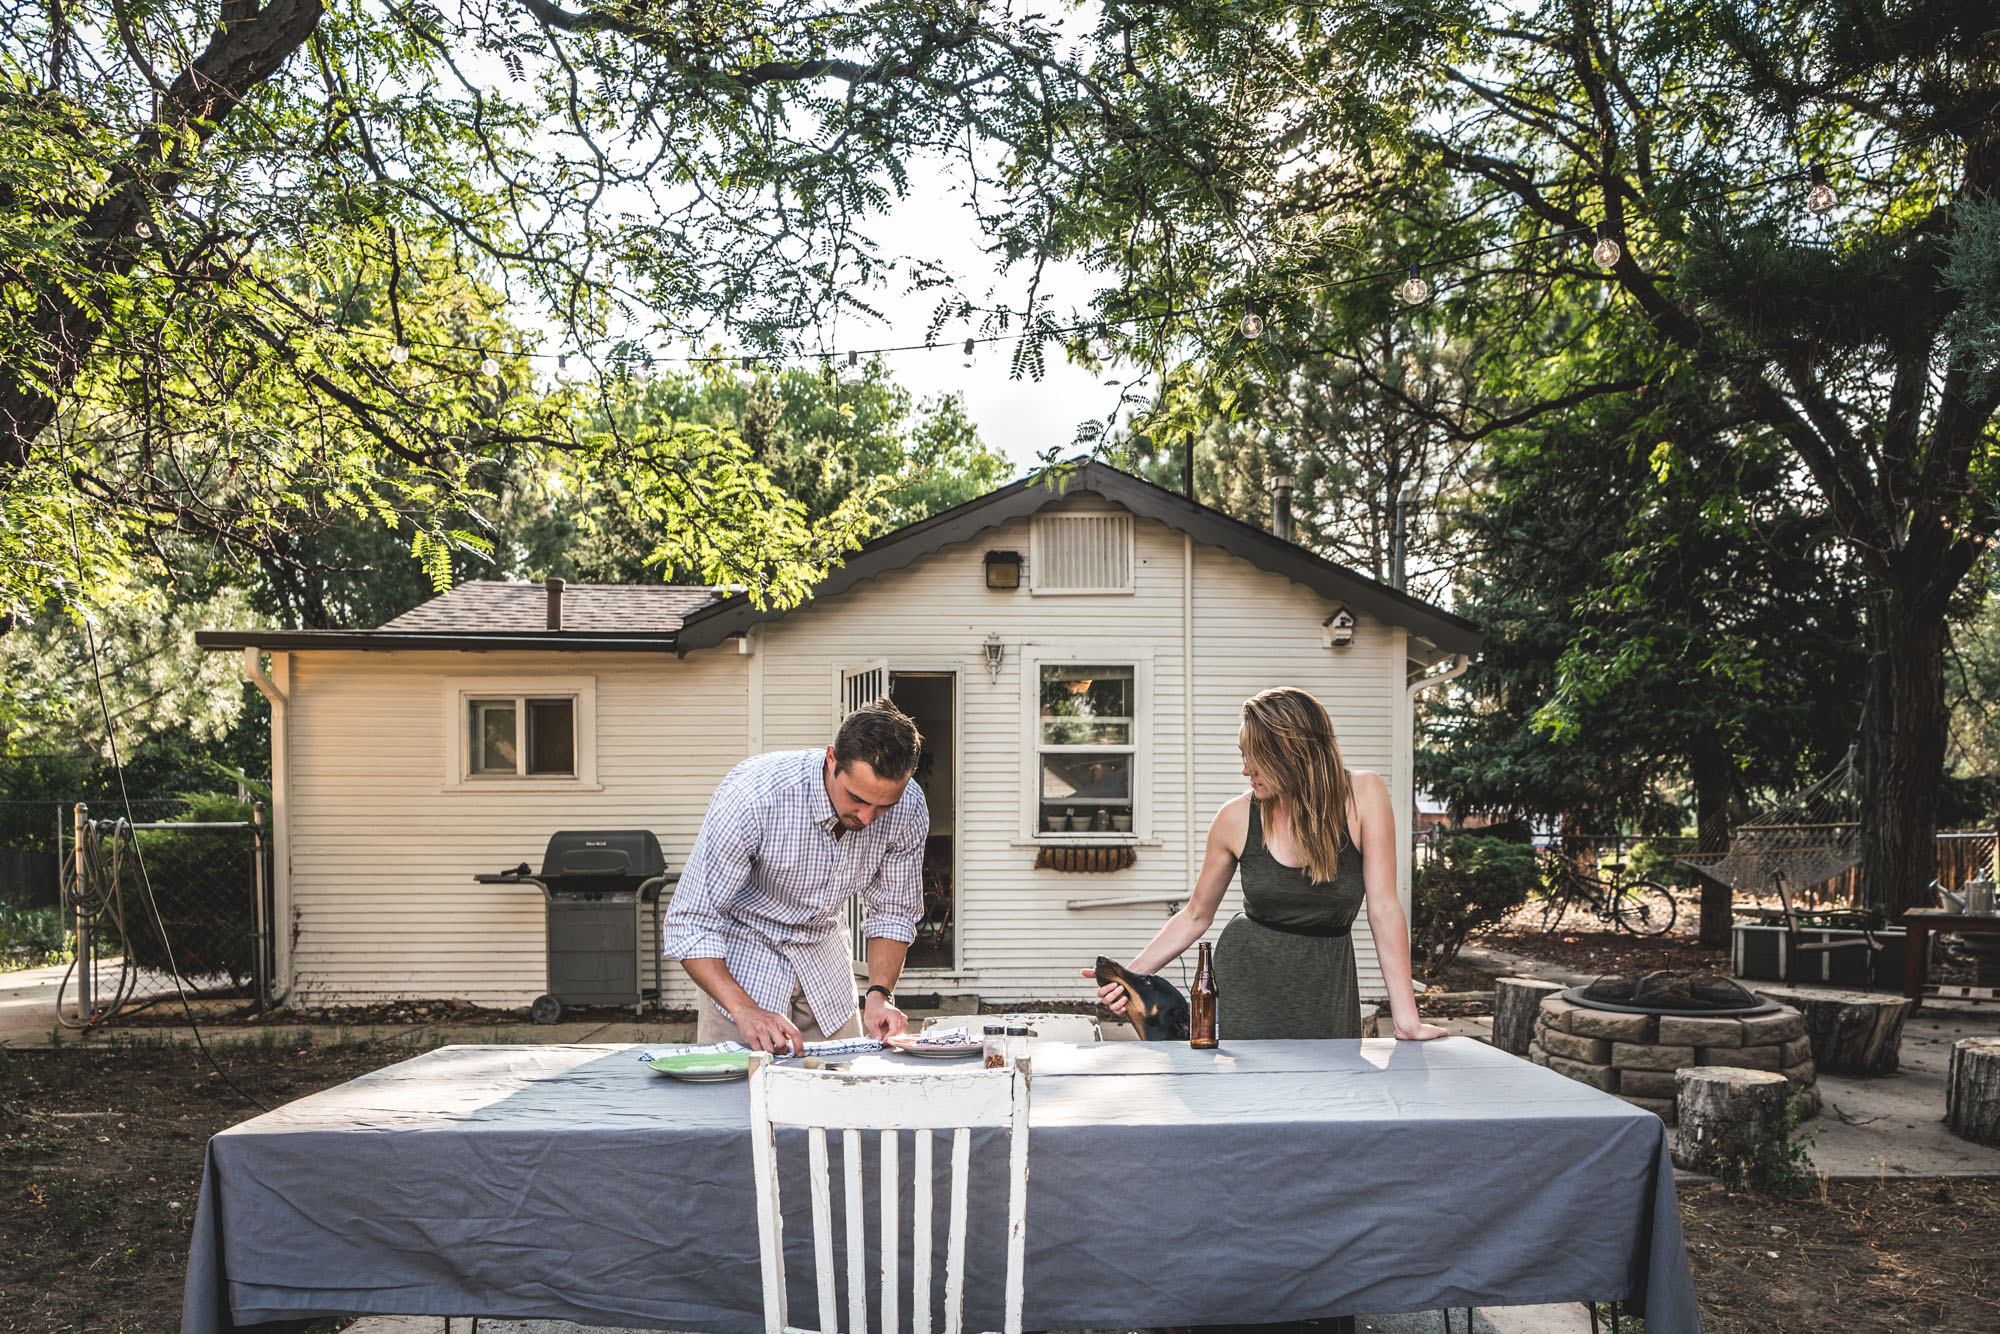 Man and woman at an outside table, the man setting the table and the woman petting their dog